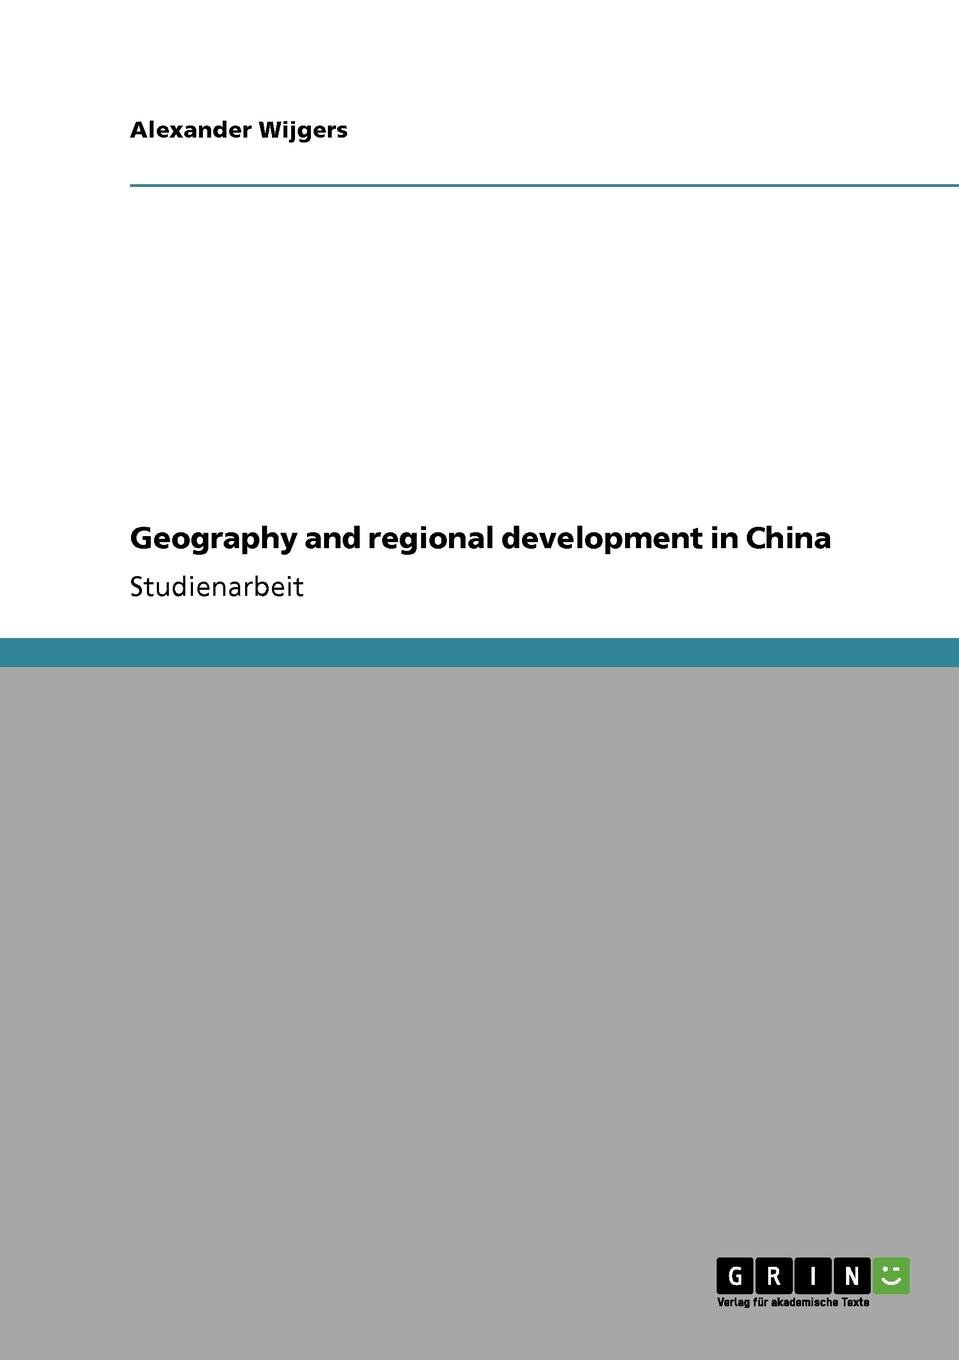 Alexander Wijgers Geography and regional development in China korean pricing policies and economic development i n the 1960s